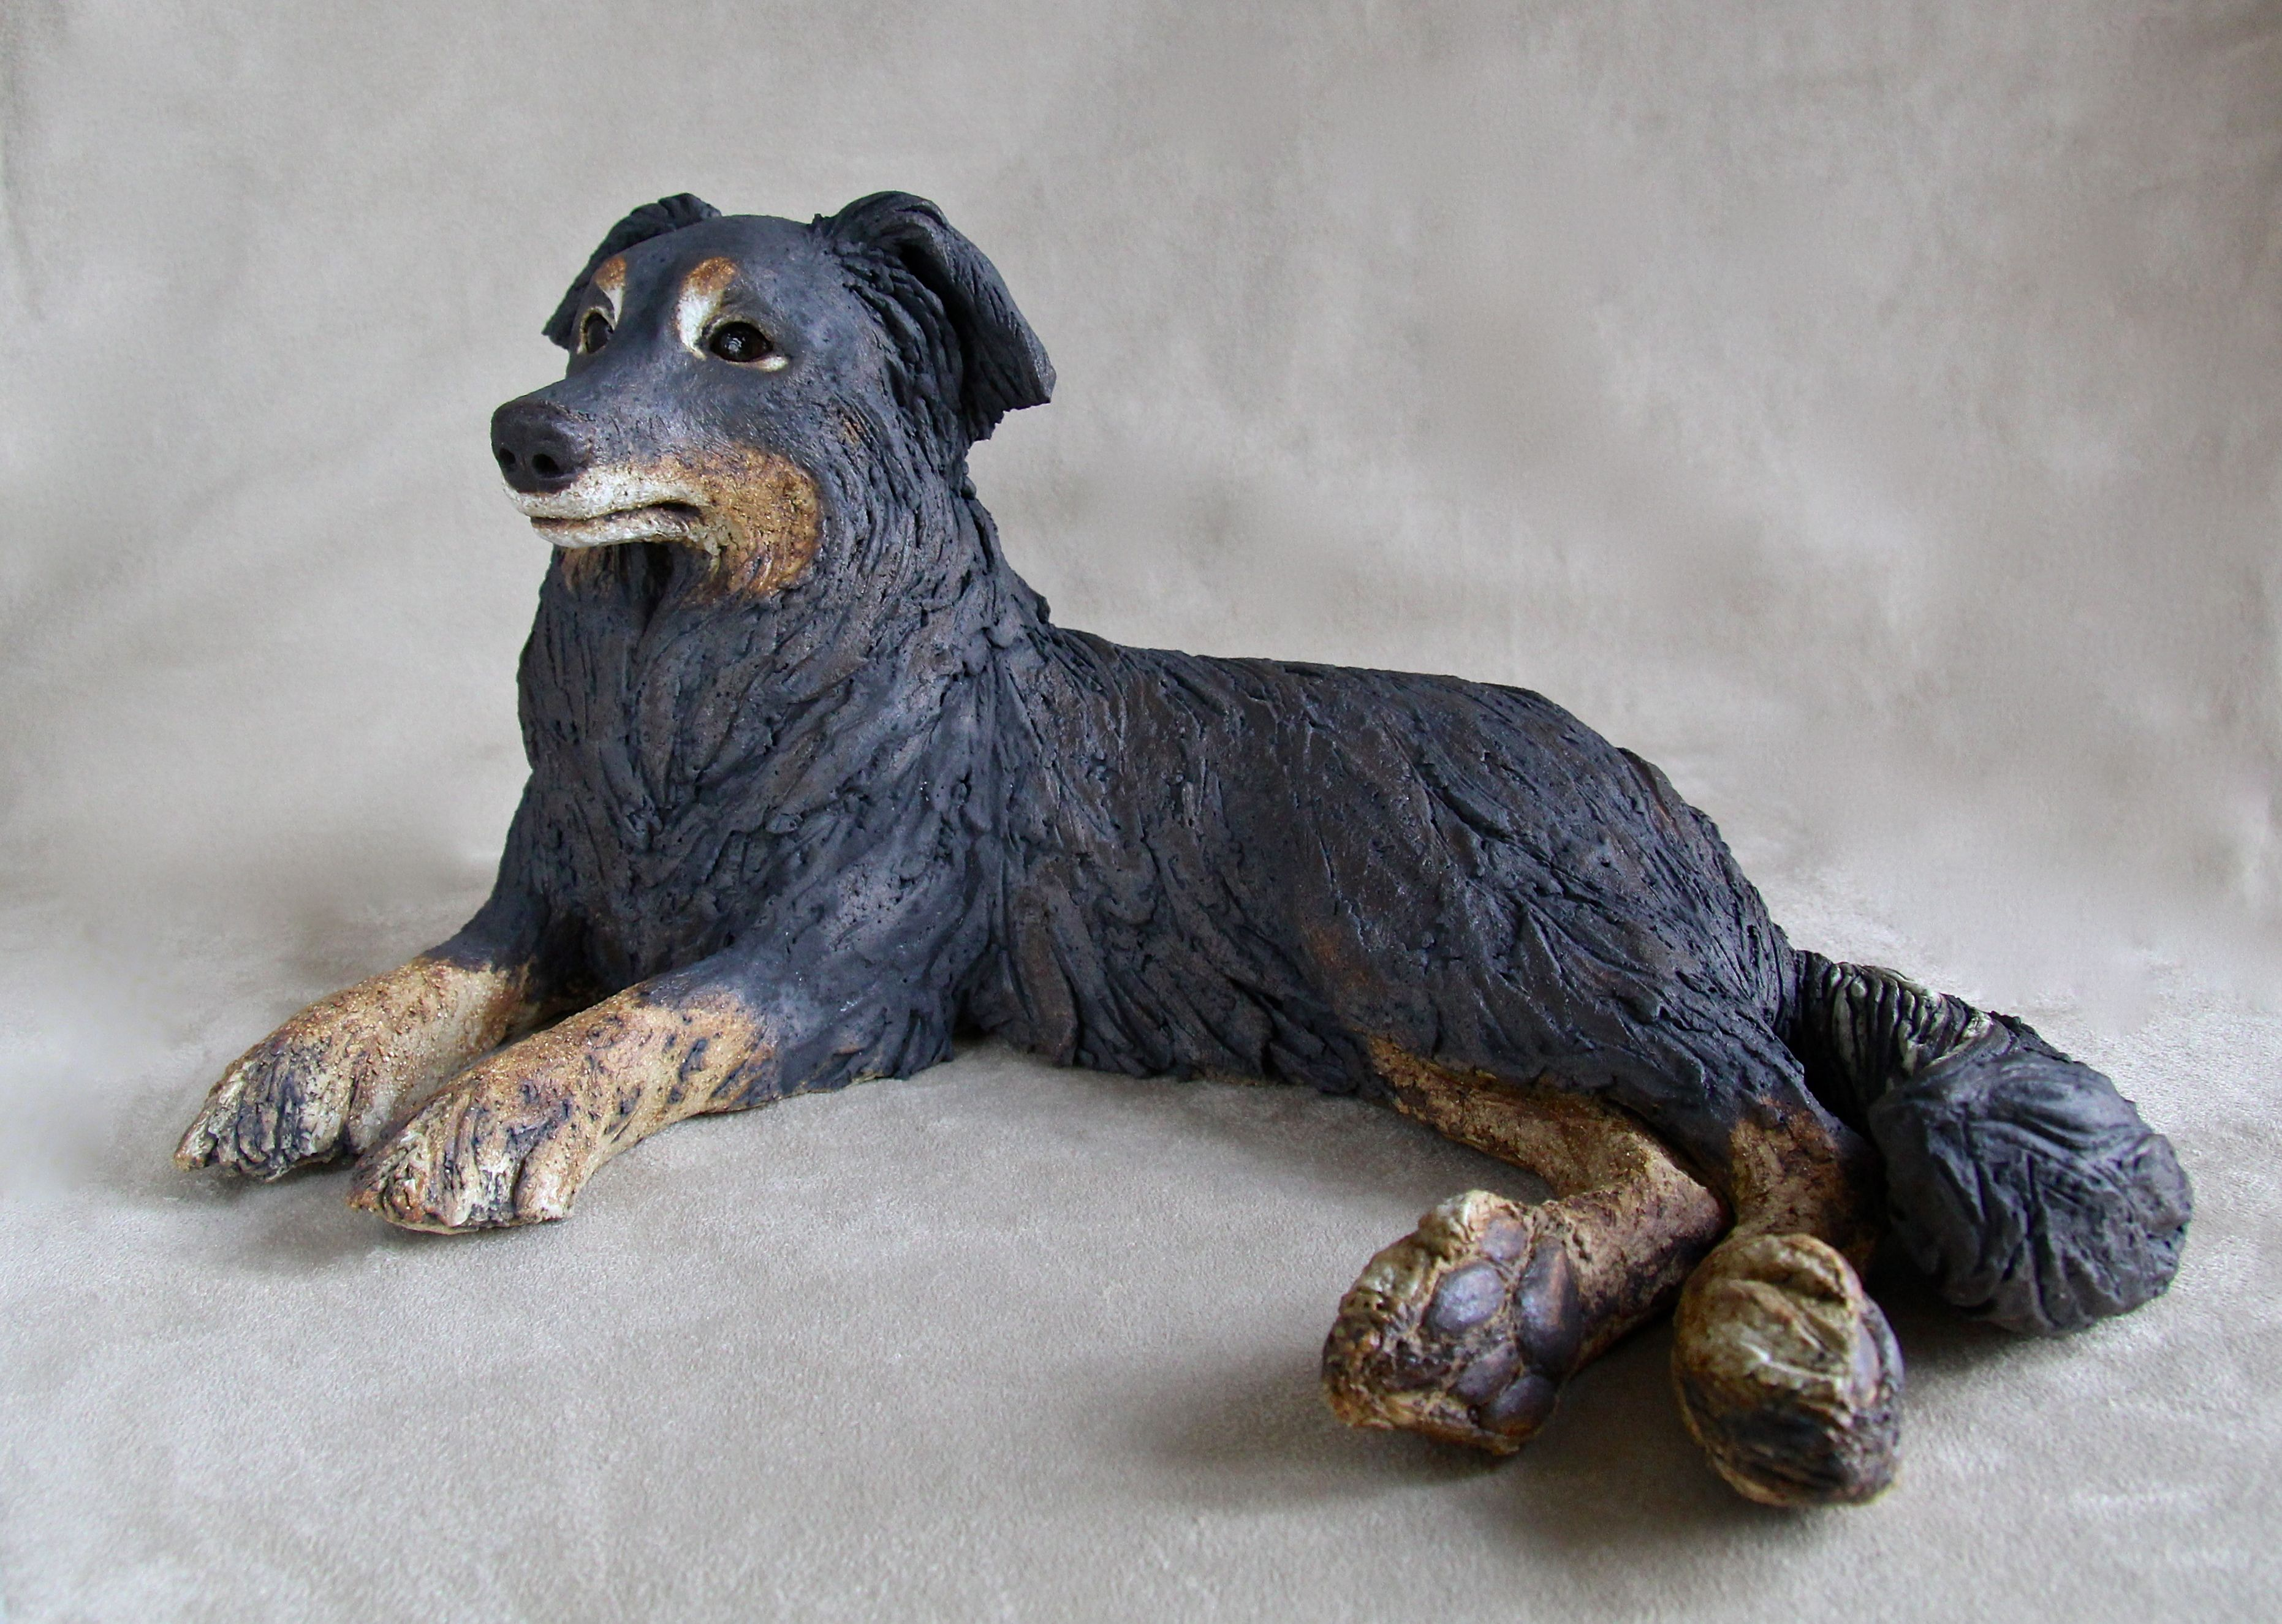 Collie Cross Commission - Ceramic stoneware with oxide glaze